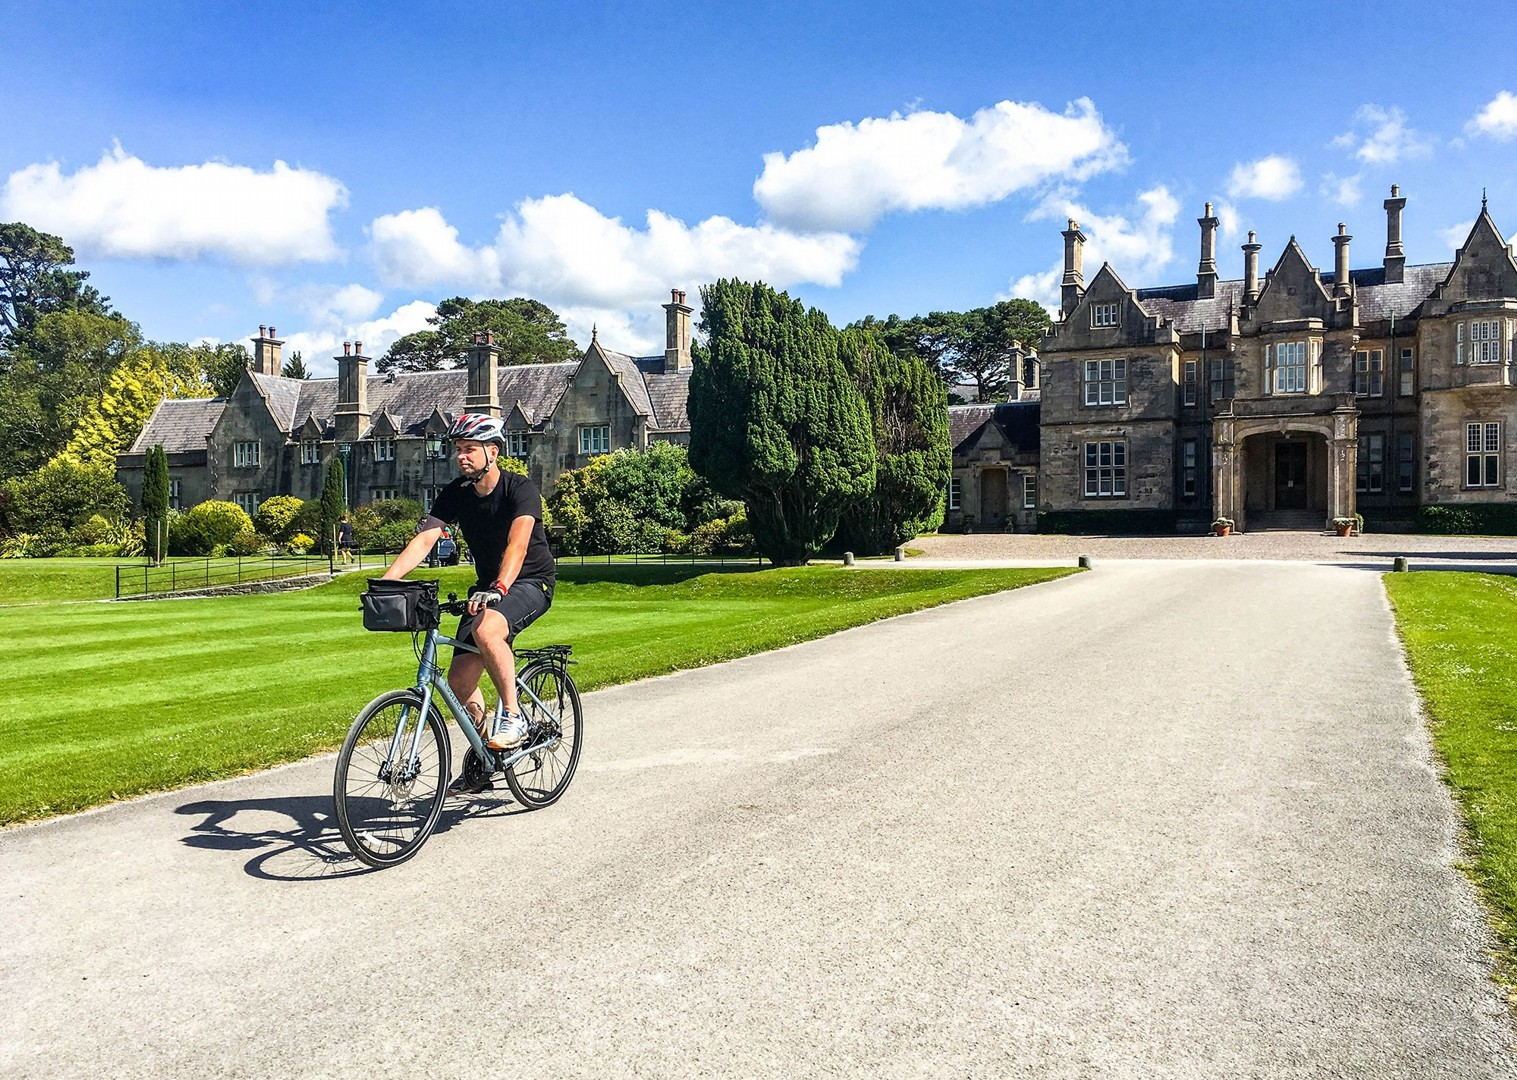 muckross-house-leisure-cycling-in-ireland-self-guided-holiday.jpg - Ireland - Highlights of Kerry - Self-Guided Leisure Cycling Holiday - Leisure Cycling